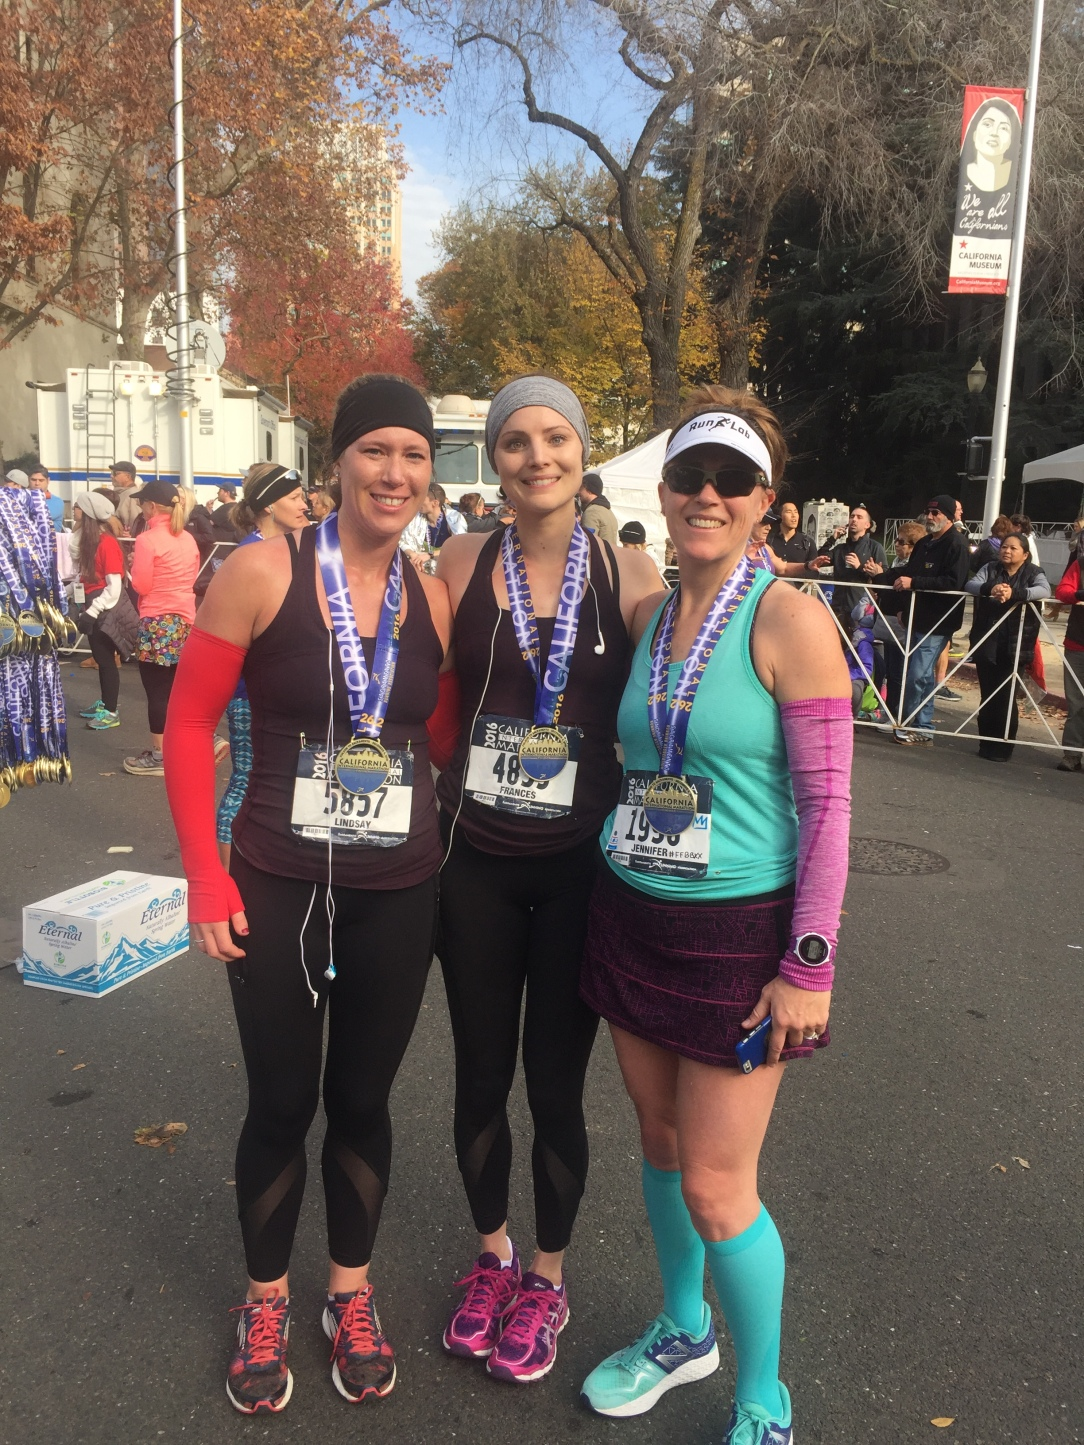 Finish line photo with our new running friend, Jen